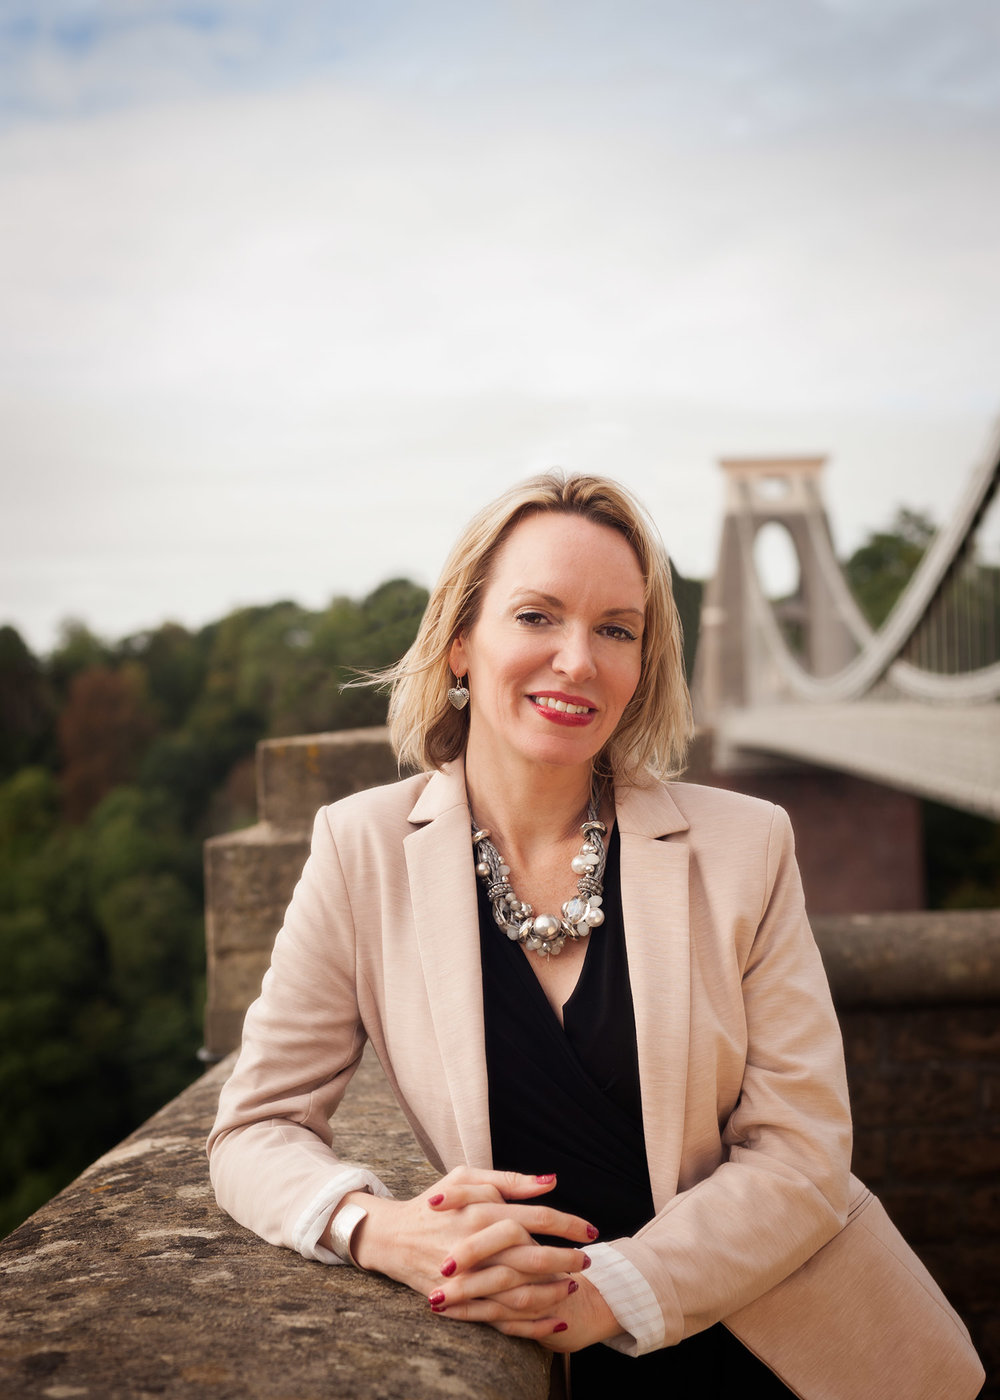 Commercial portrait of realtor on Bristol background by commercial photographers at Ripe Photography in the U.K.